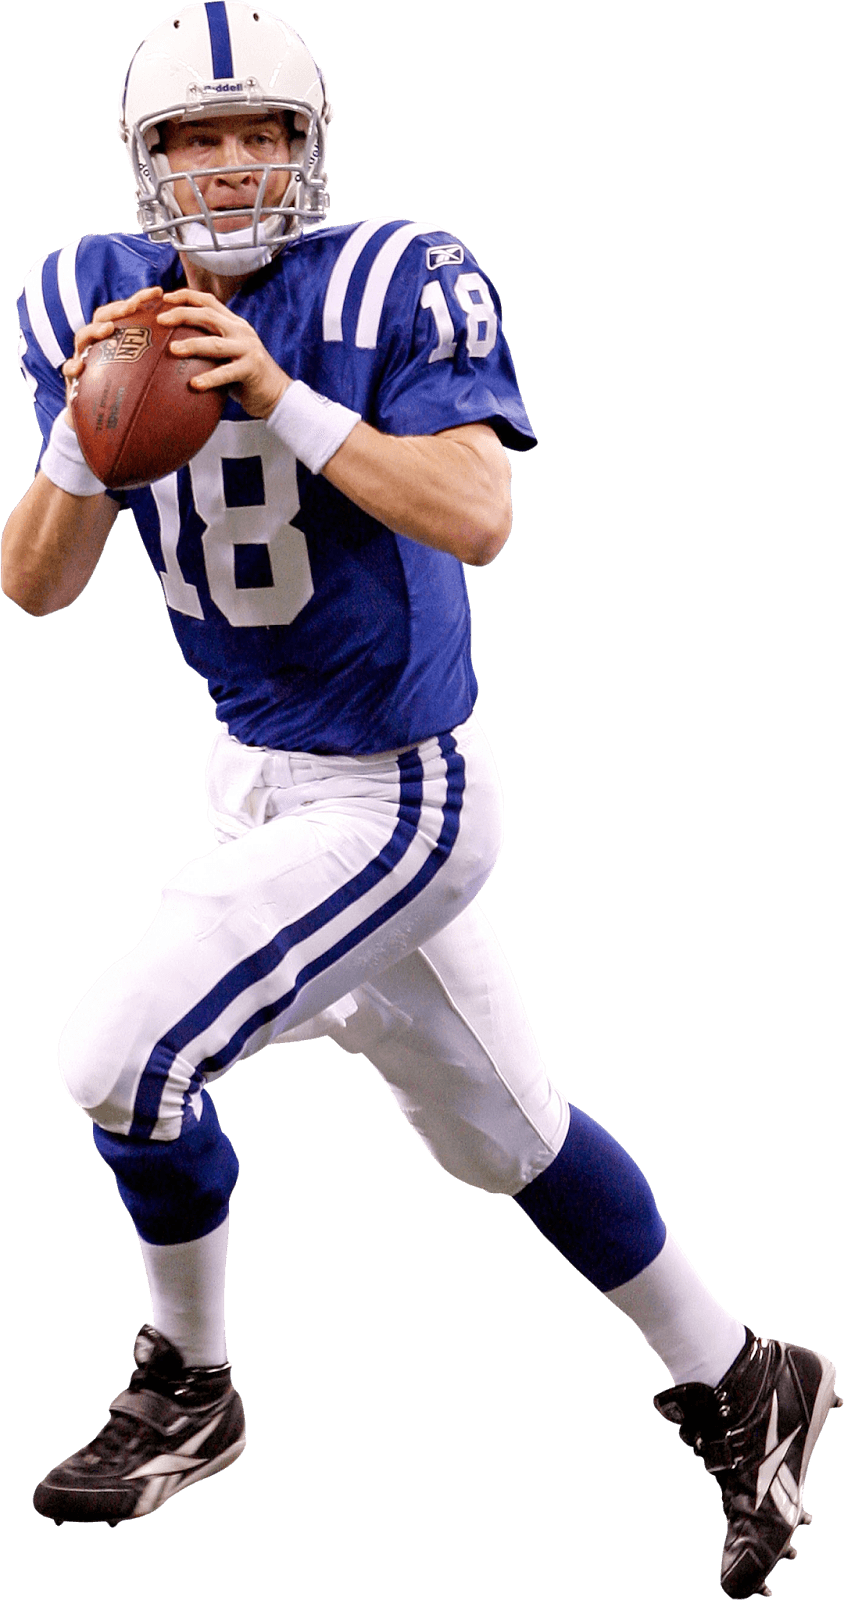 Nfl players png. Indianapolis colts player transparent